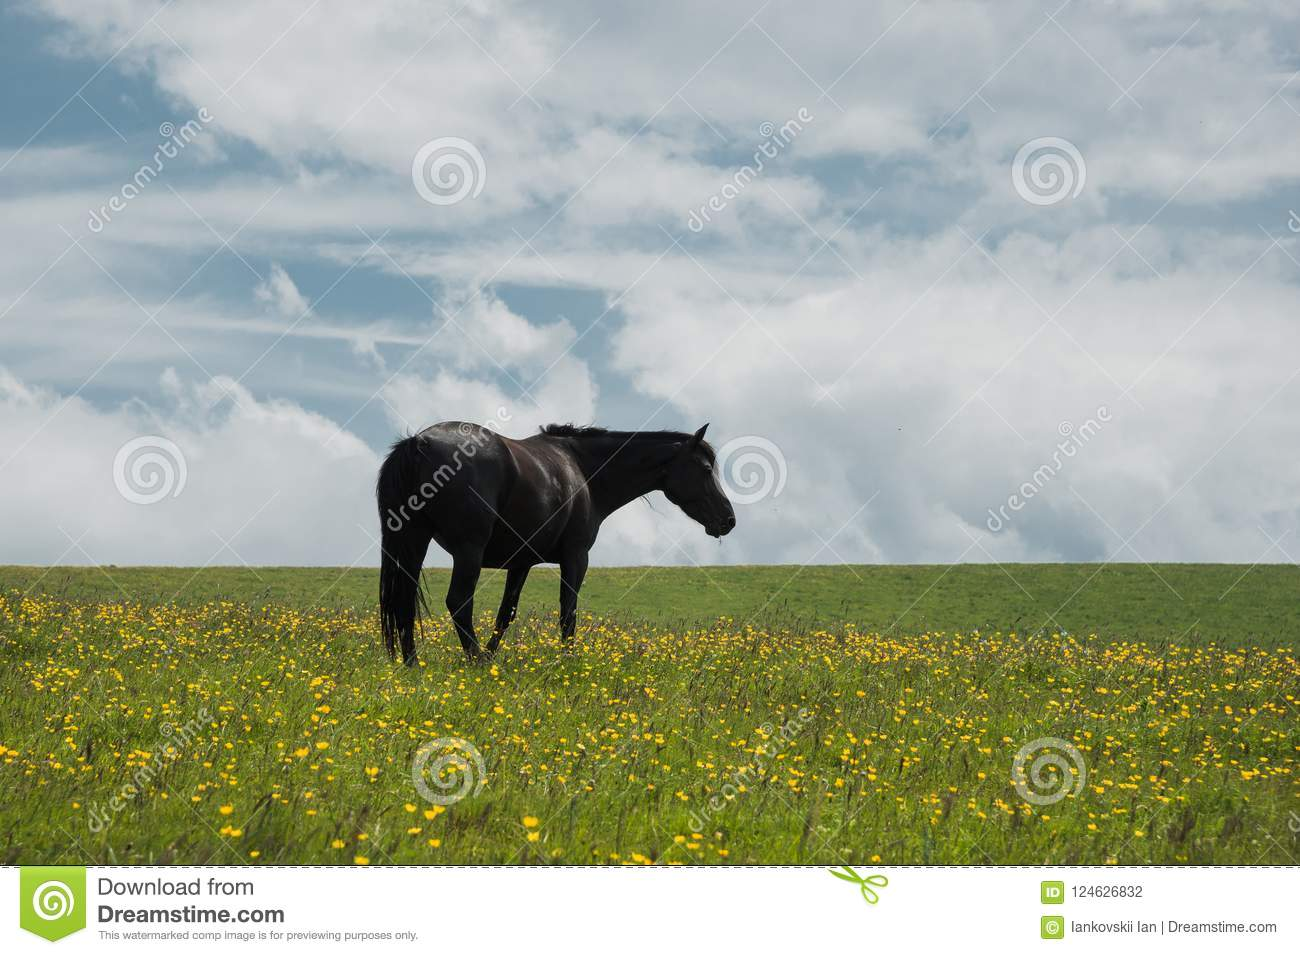 A Horse On A Green Pasture With Yellow Flowers Against A Blue Sky